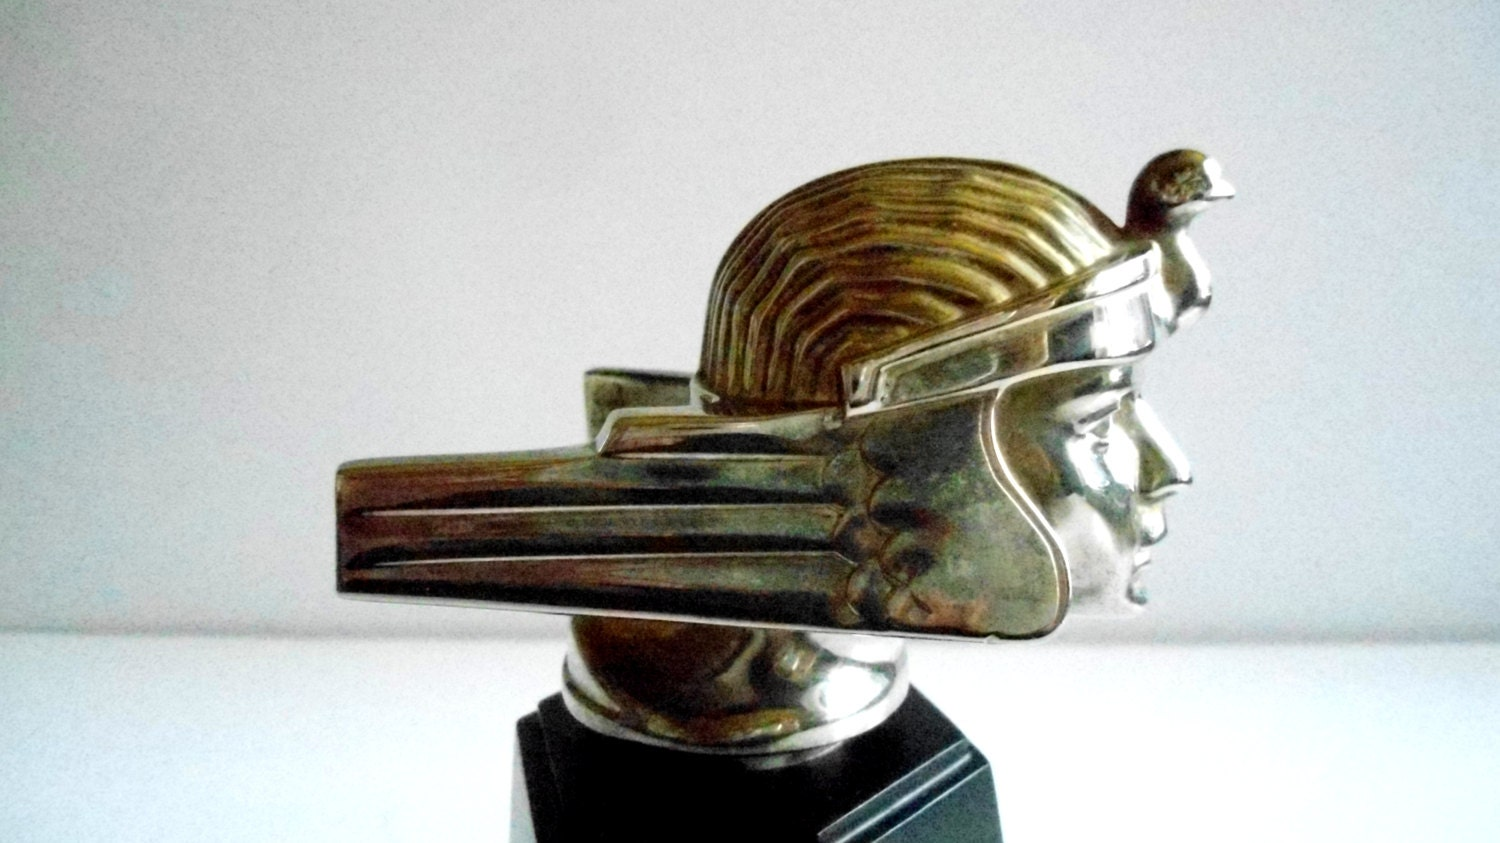 art deco hood ornament from a stutz bearcat automobile repo by. Black Bedroom Furniture Sets. Home Design Ideas